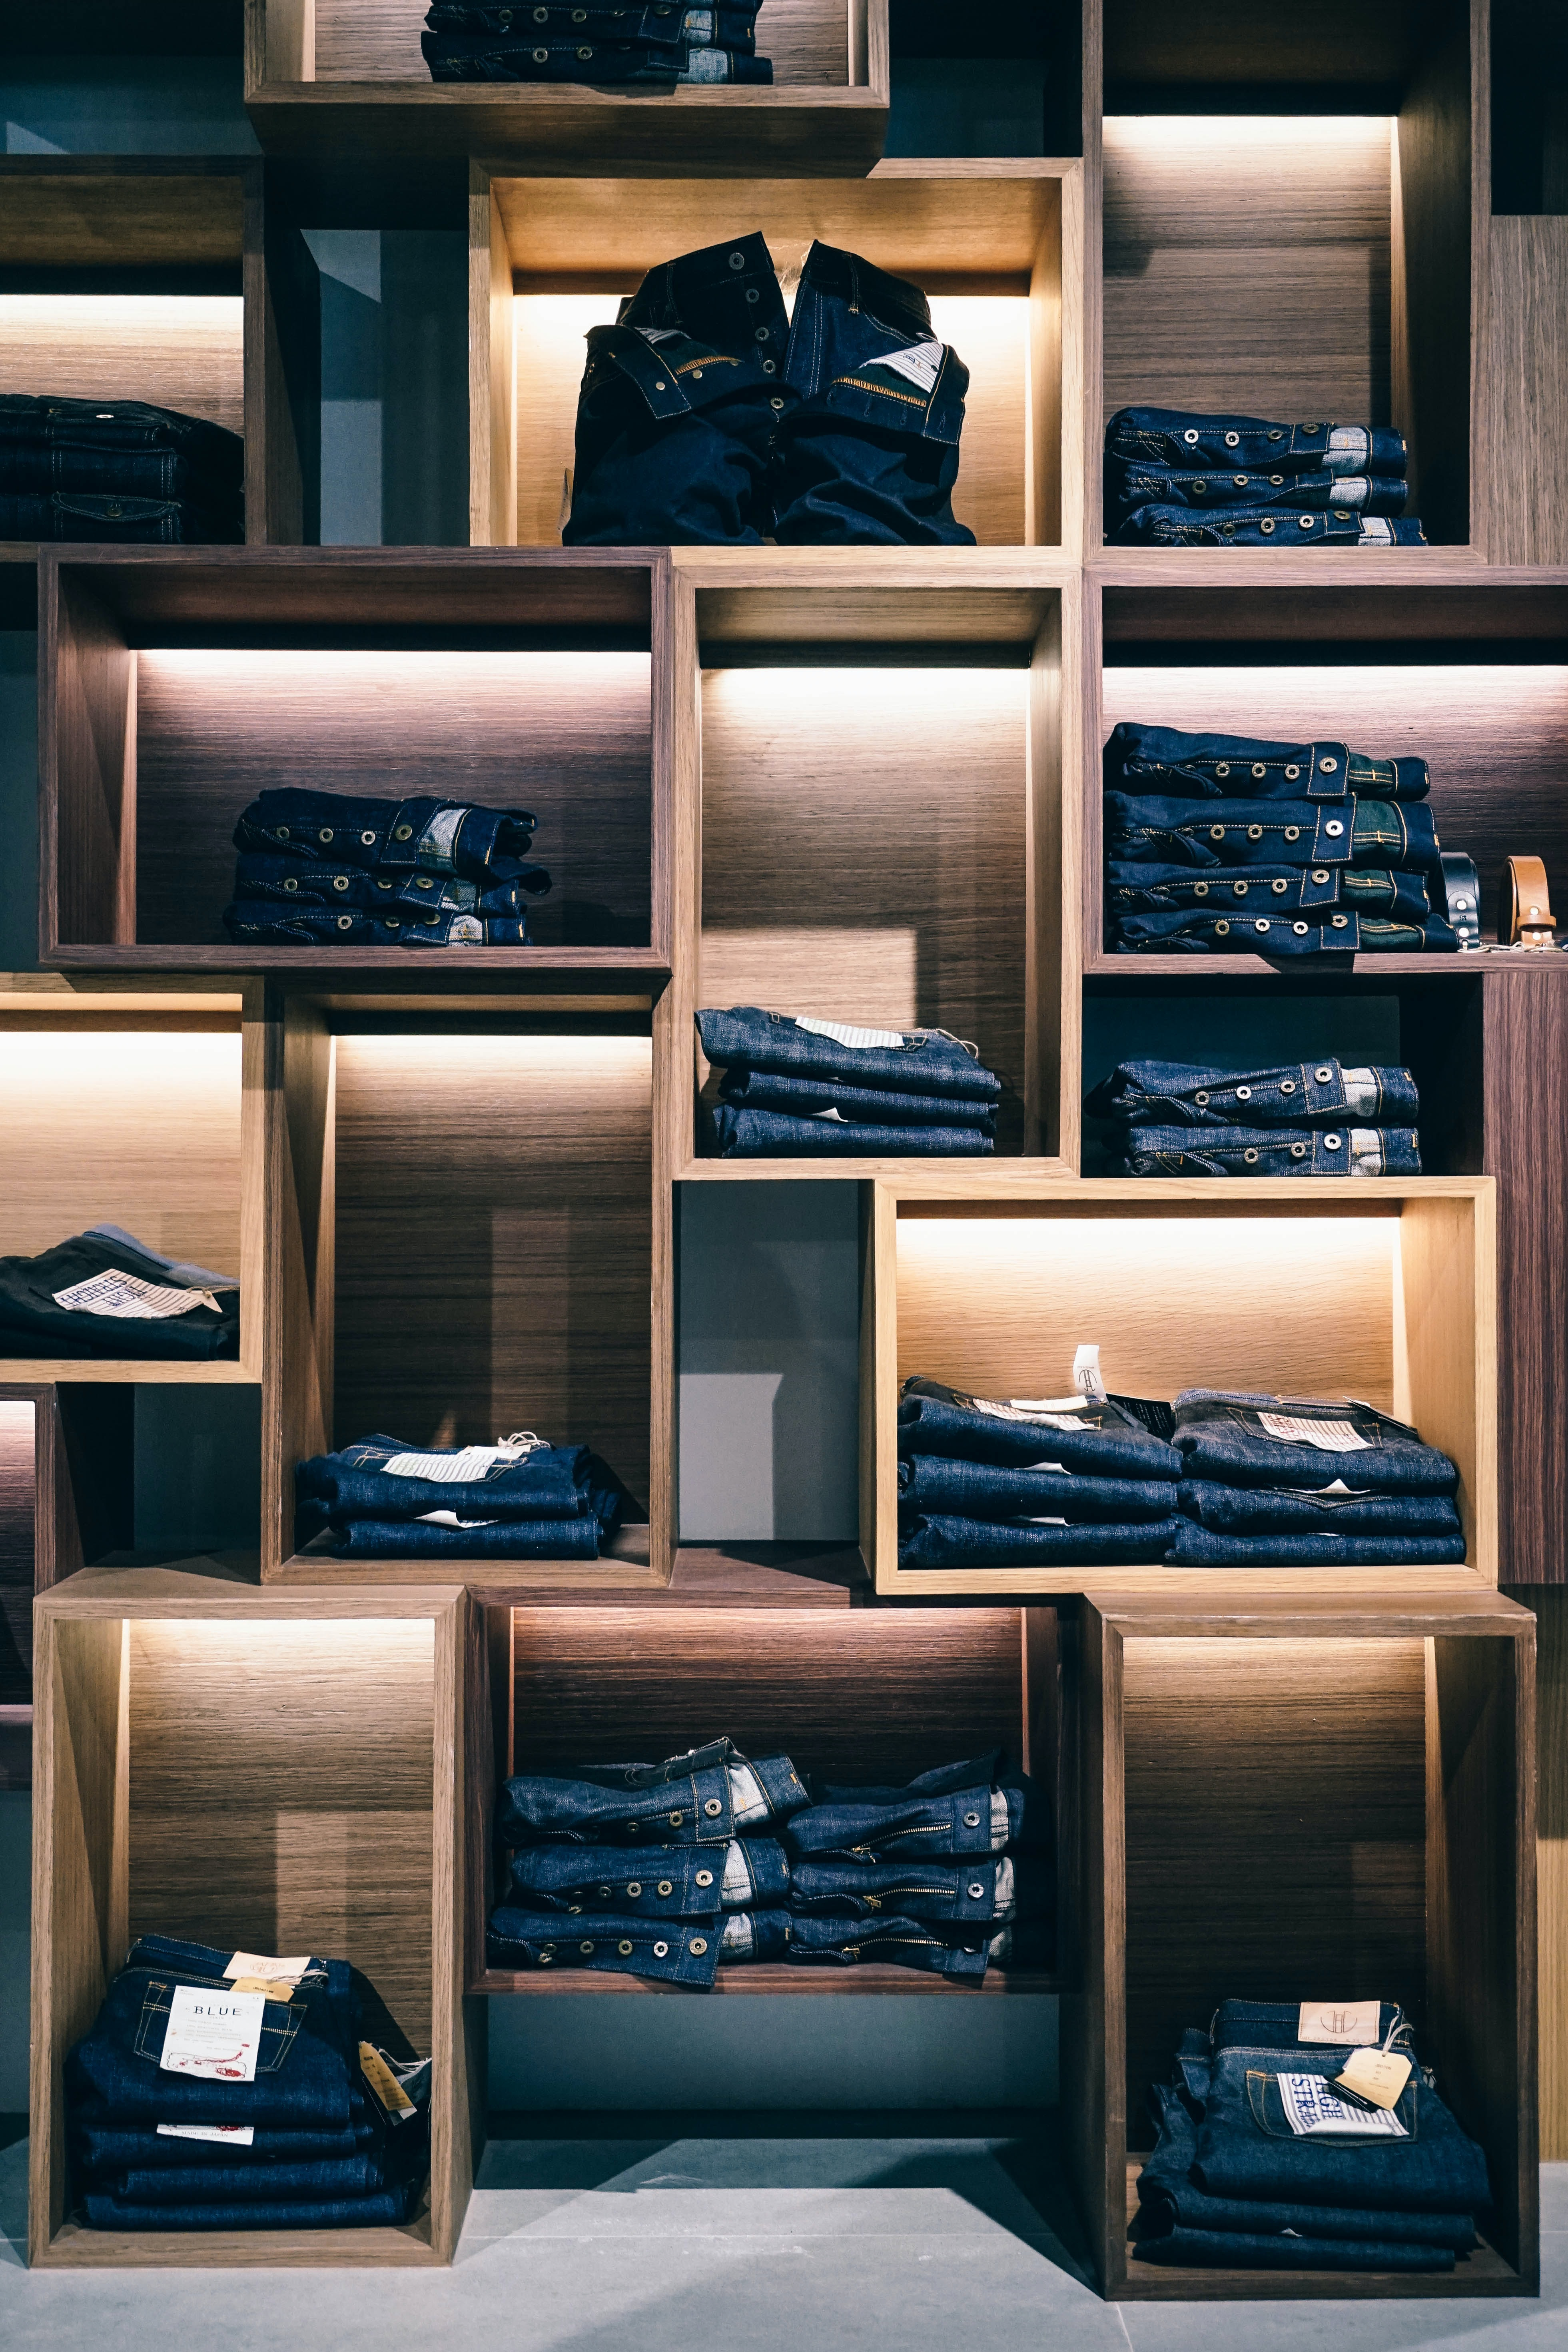 Clothing at a store.